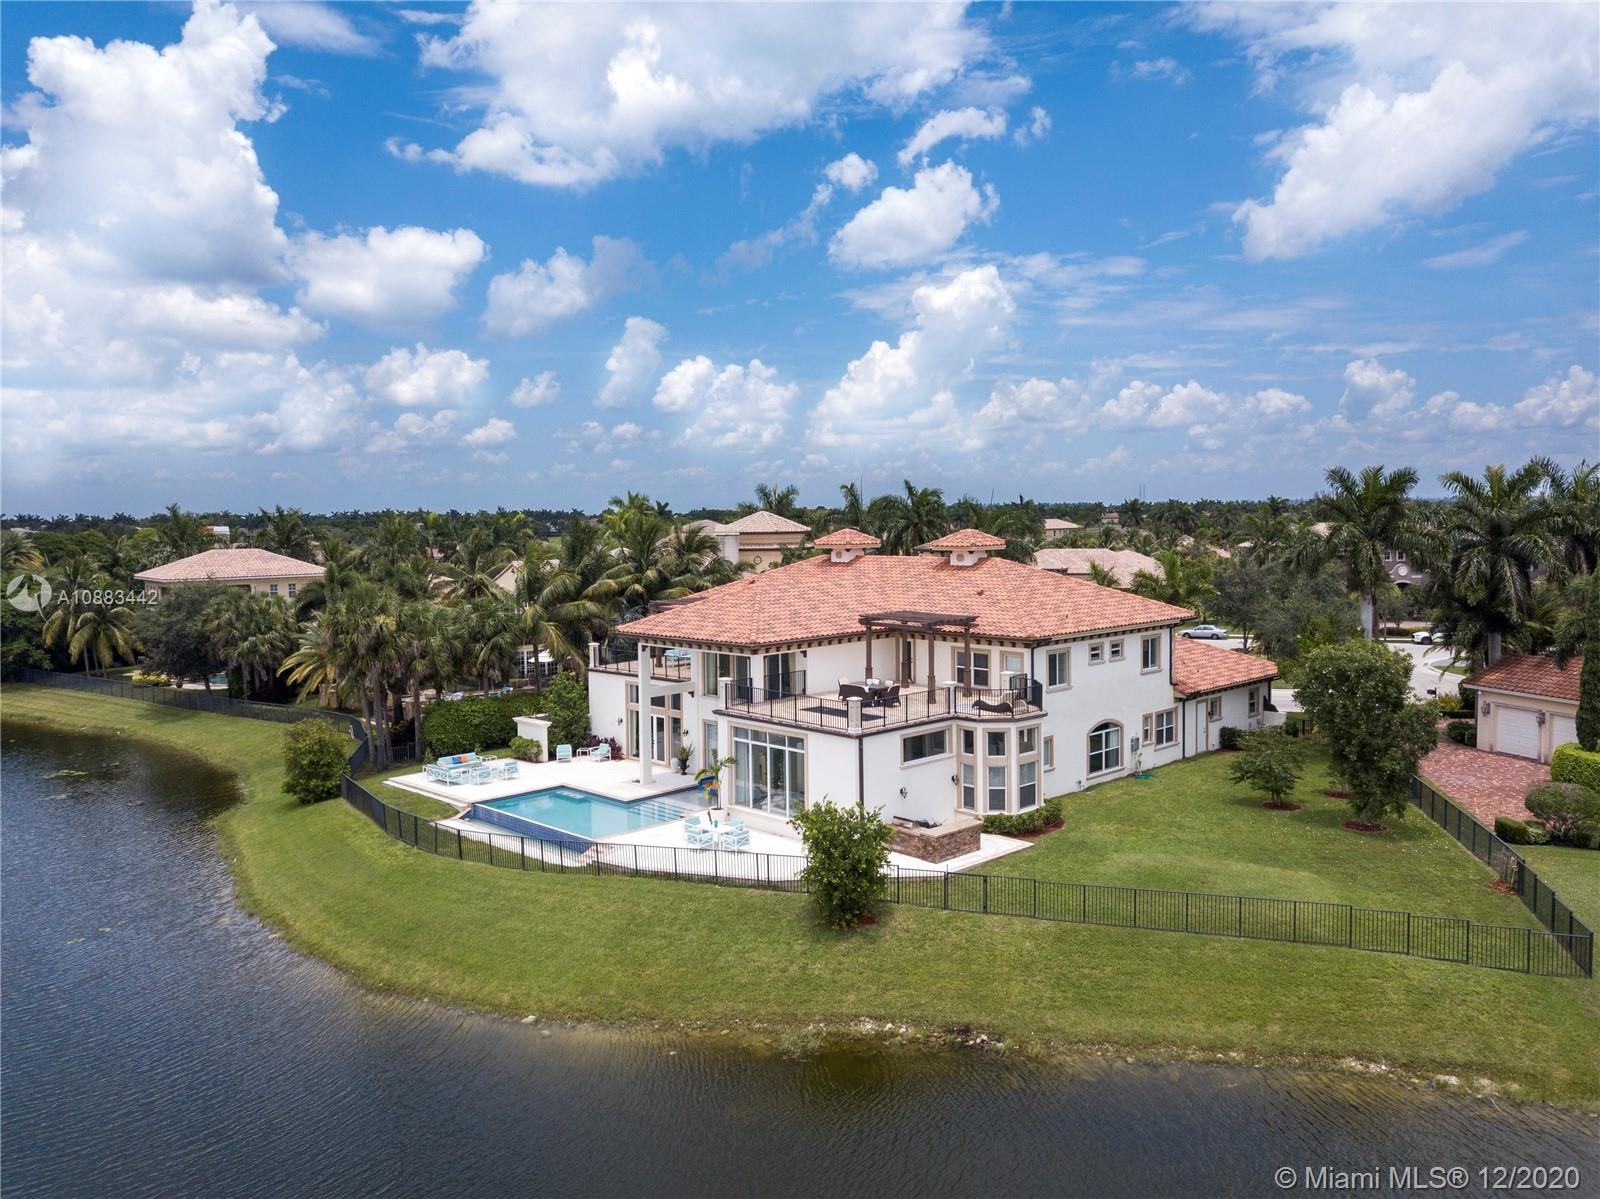 The Ideal Estate built in 2016 on arguably the best waterfront lot with open Golf Course views in the exclusive gated Heron Estates division of Heron Bay community with no rear neighbors. This unique home boasts an expansive smart layout with a grand entrance, dramatic staircase & sprawling living areas. Featuring 7 bedrooms with a large private master suite, 6 full baths and 2 half baths, separate office, additional upstairs family room, maid's quarters with oversized laundry room and more. Enjoy panoramic views from every room with floor to ceiling impact windows and over 1,500 sq ft in outdoor terraces. Experience unmatched sunset views lounging by the infinity edge pool & outdoor kitchen area. It is truly a must-see on a half-acre peninsula-shaped lot situated on a private cul de sac.